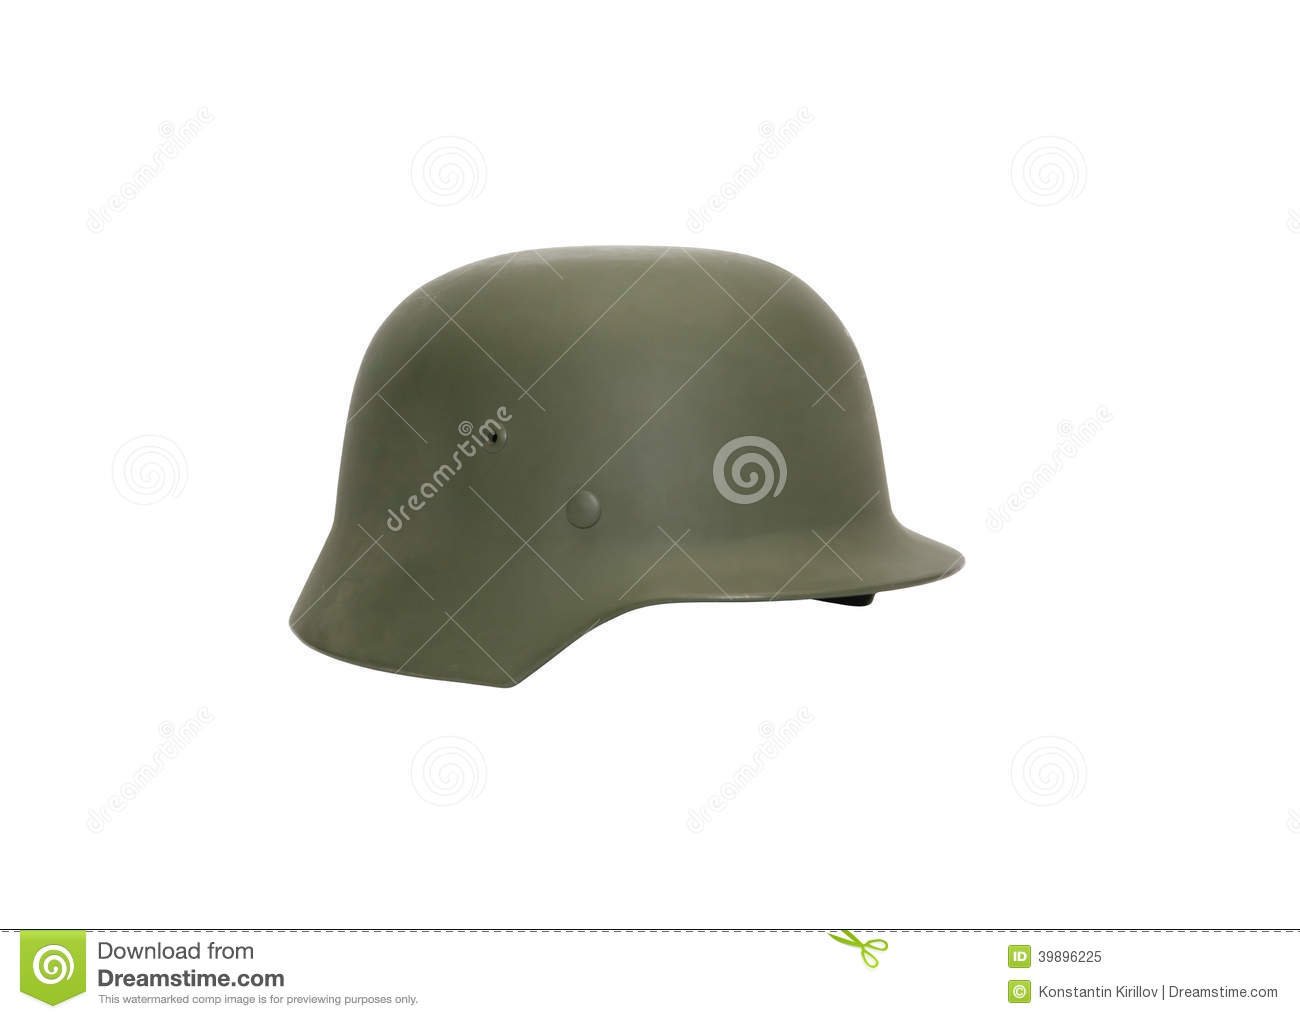 German Military Helmet stock image  Image of german, green - 39896225